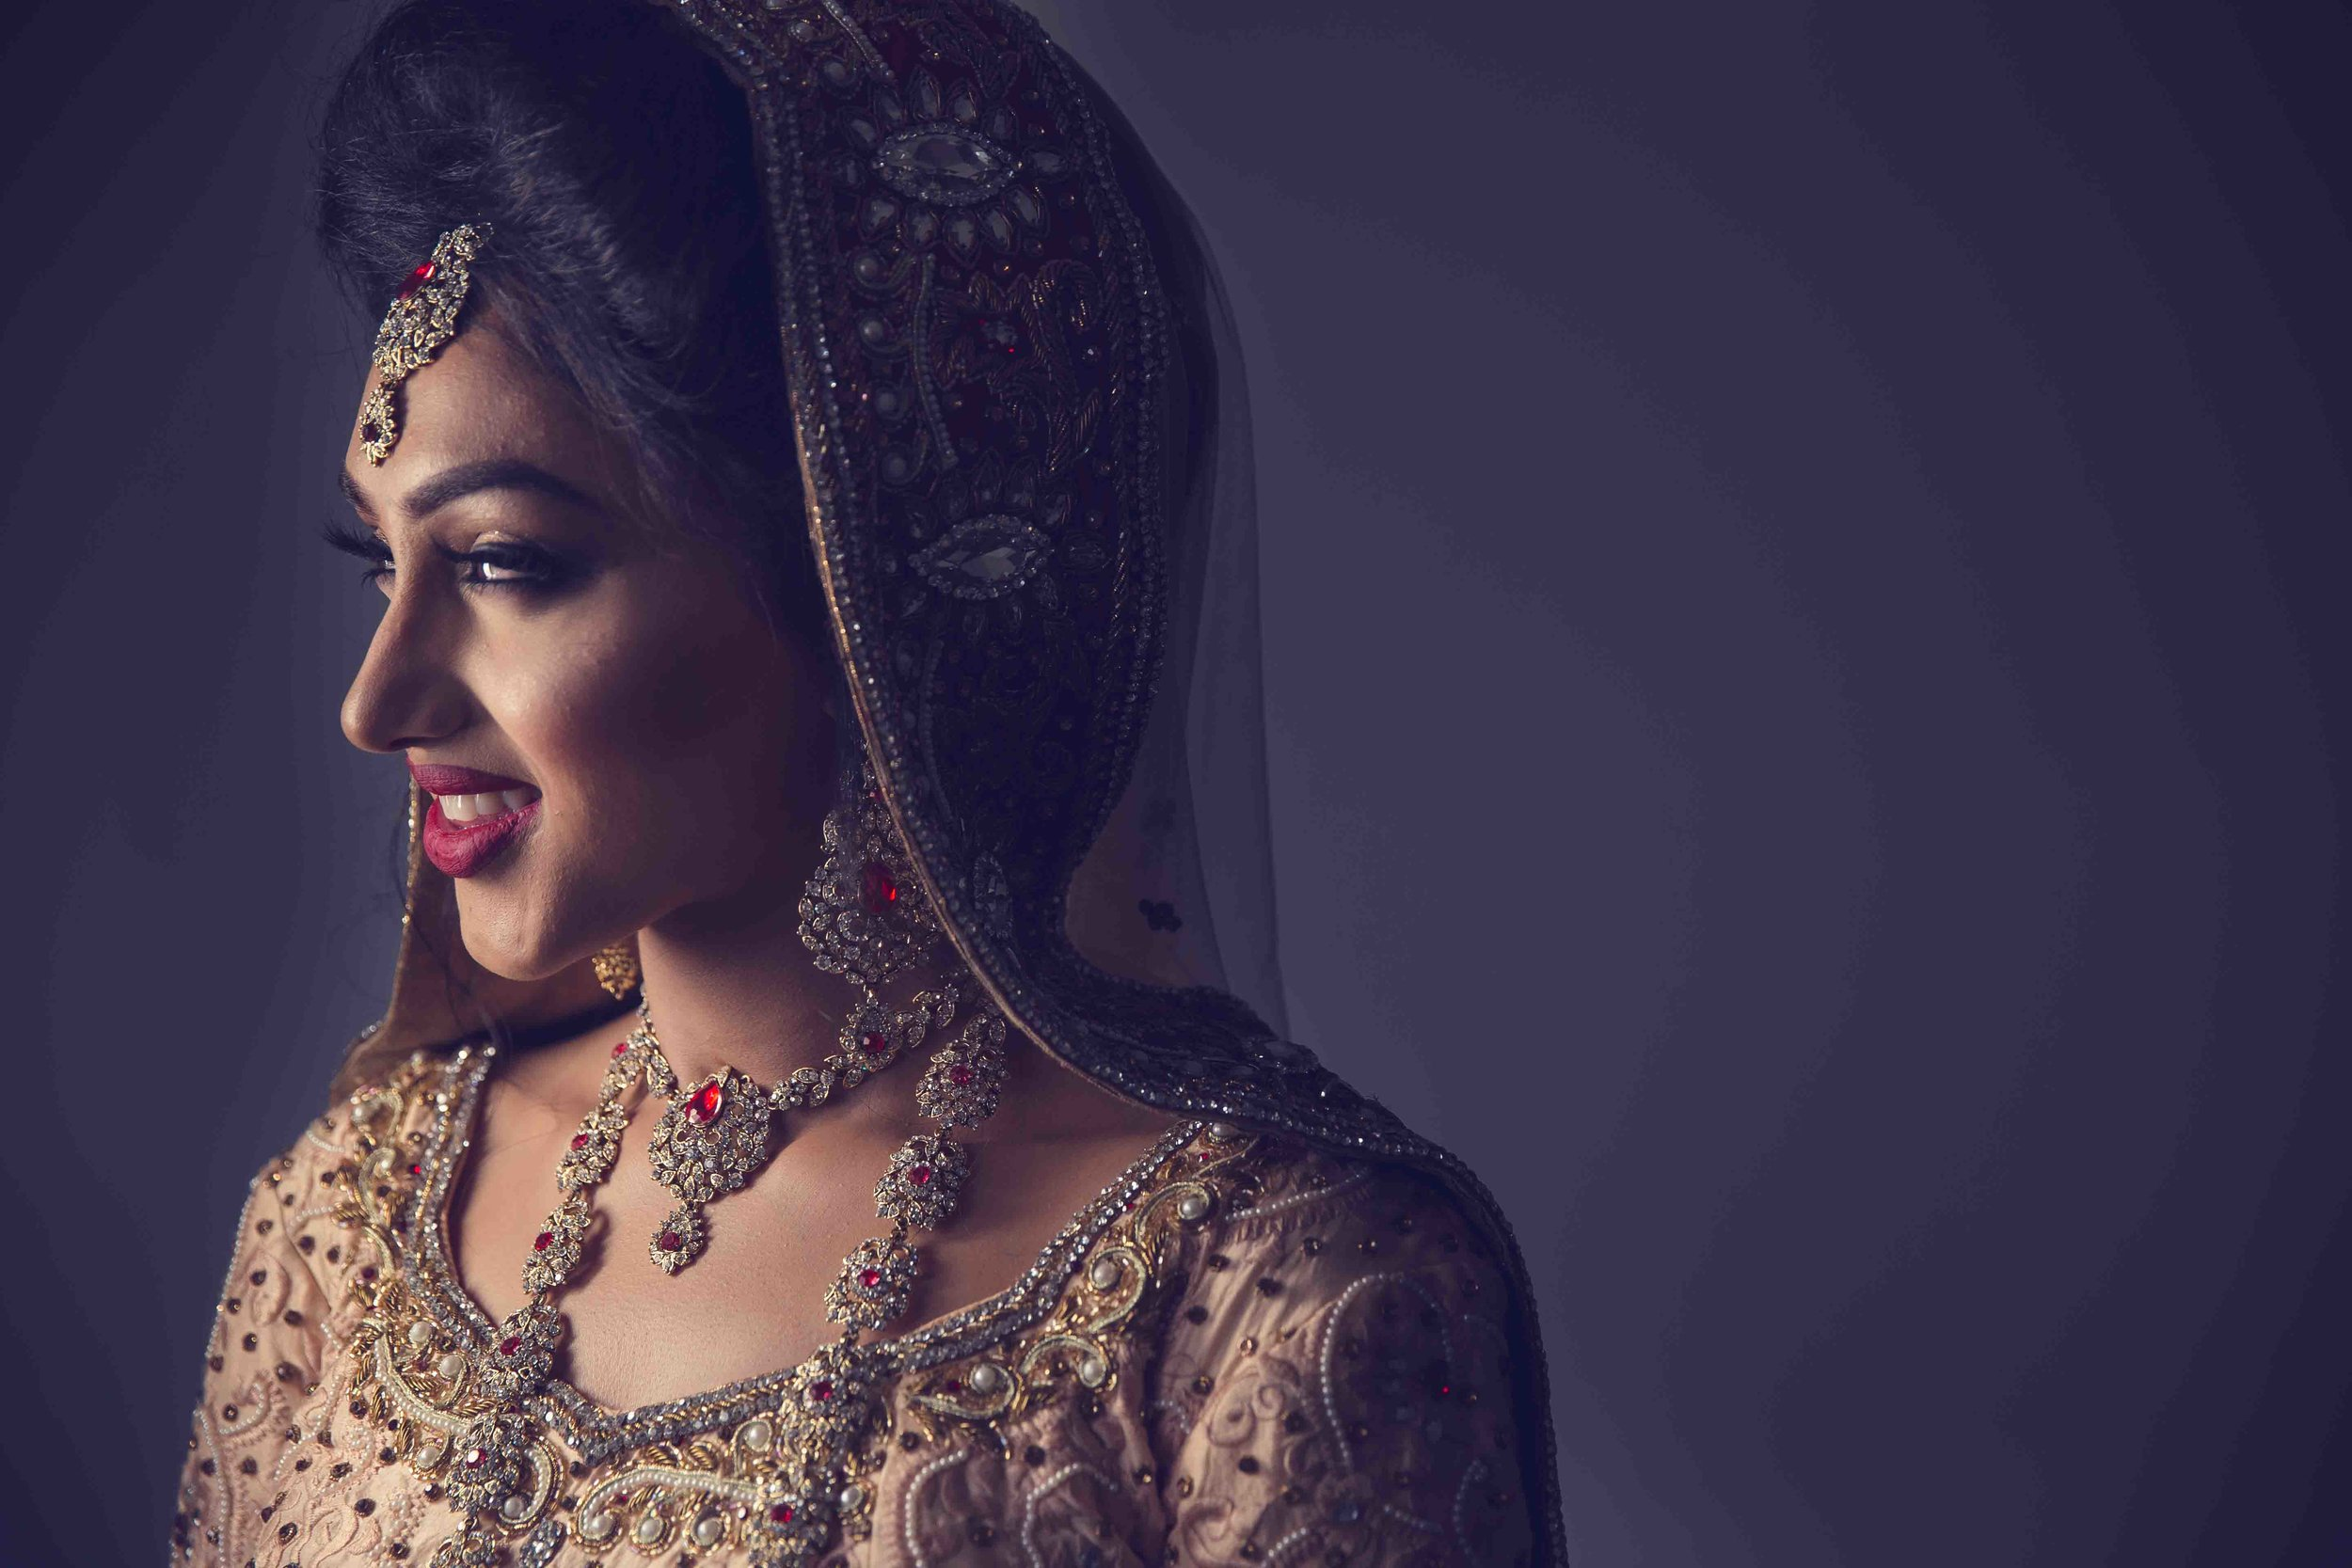 Asian Wedding Photographer Opu Sultan Photography Lyme Park Scotland Edinburgh Glasgow London Manchester Liverpool Birmingham Wedding Photos prewed shoot Emon & lazina Blog-5.jpg